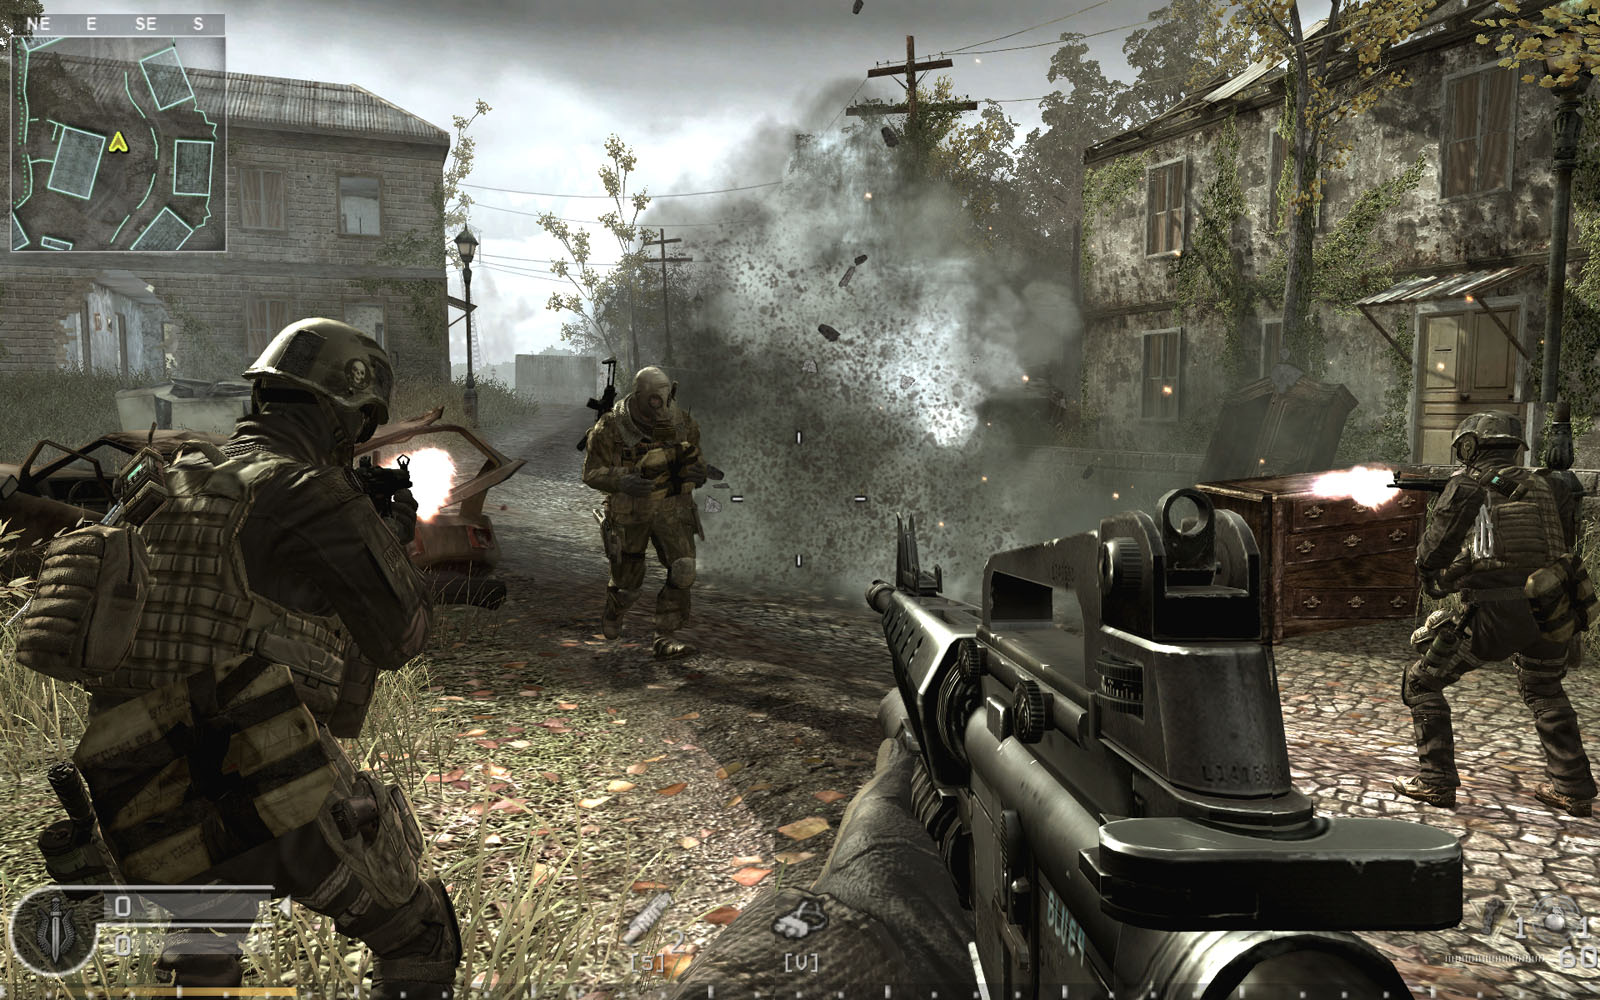 firstpersonshooterjpgis-call-of-duty-a-suitable-first-person-shooter-fps-for-kids-64463